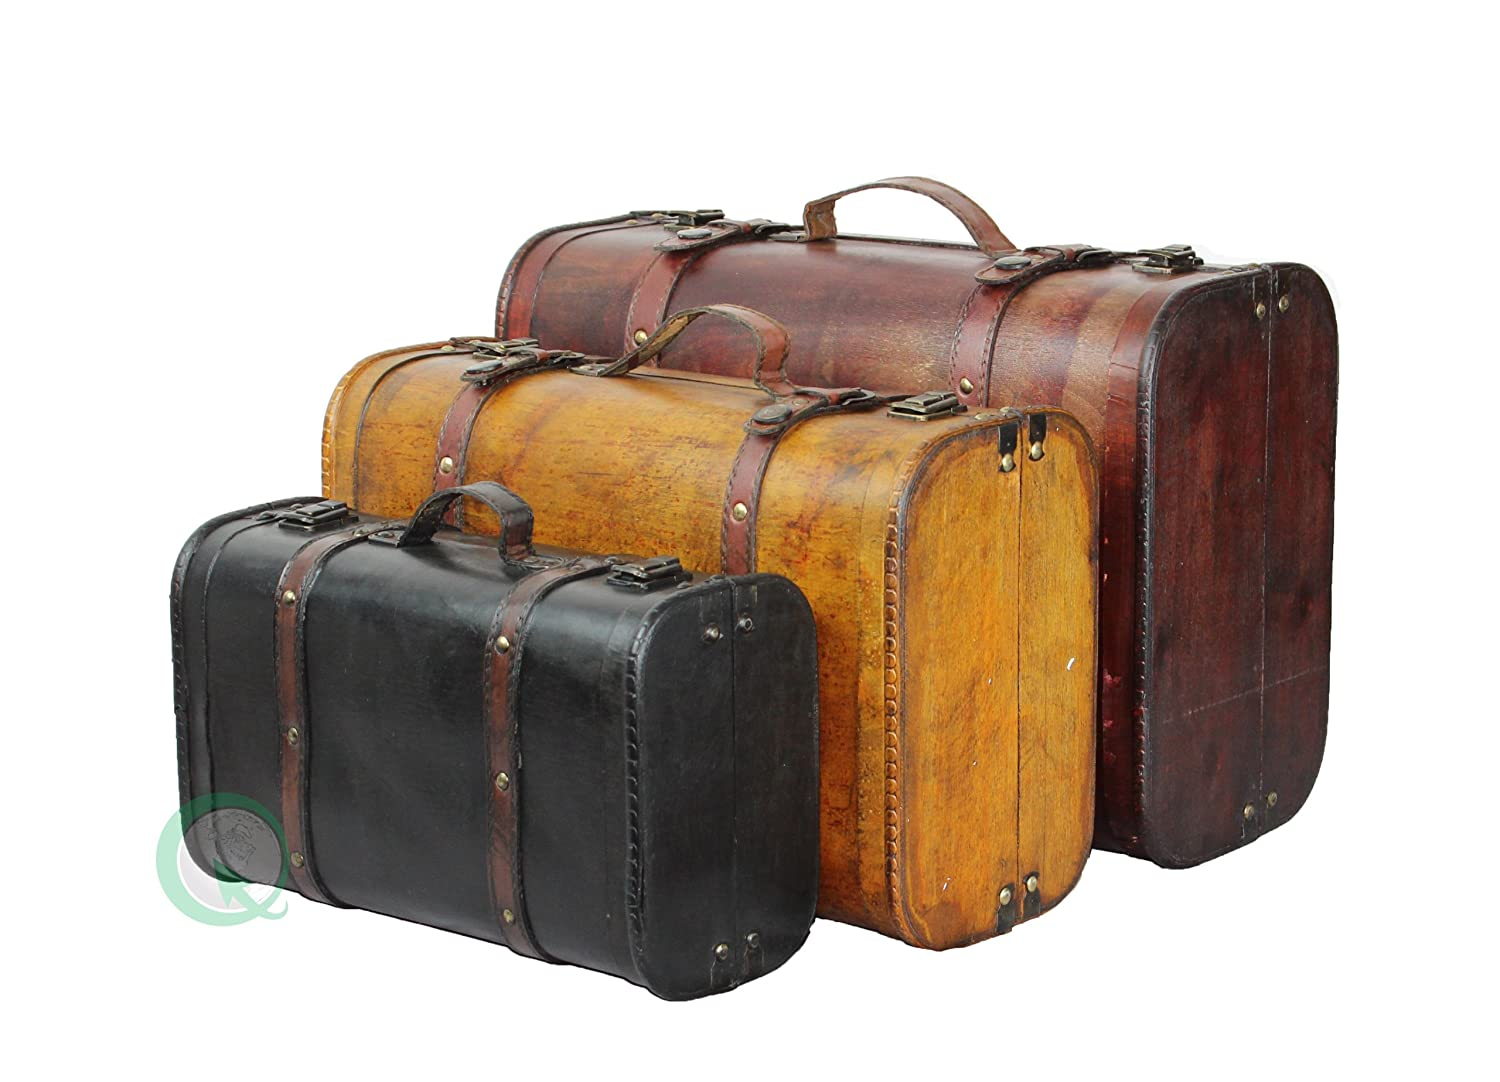 Amazon.com: Vintiquewise(TM) 3-Colored Vintage Style Luggage ...